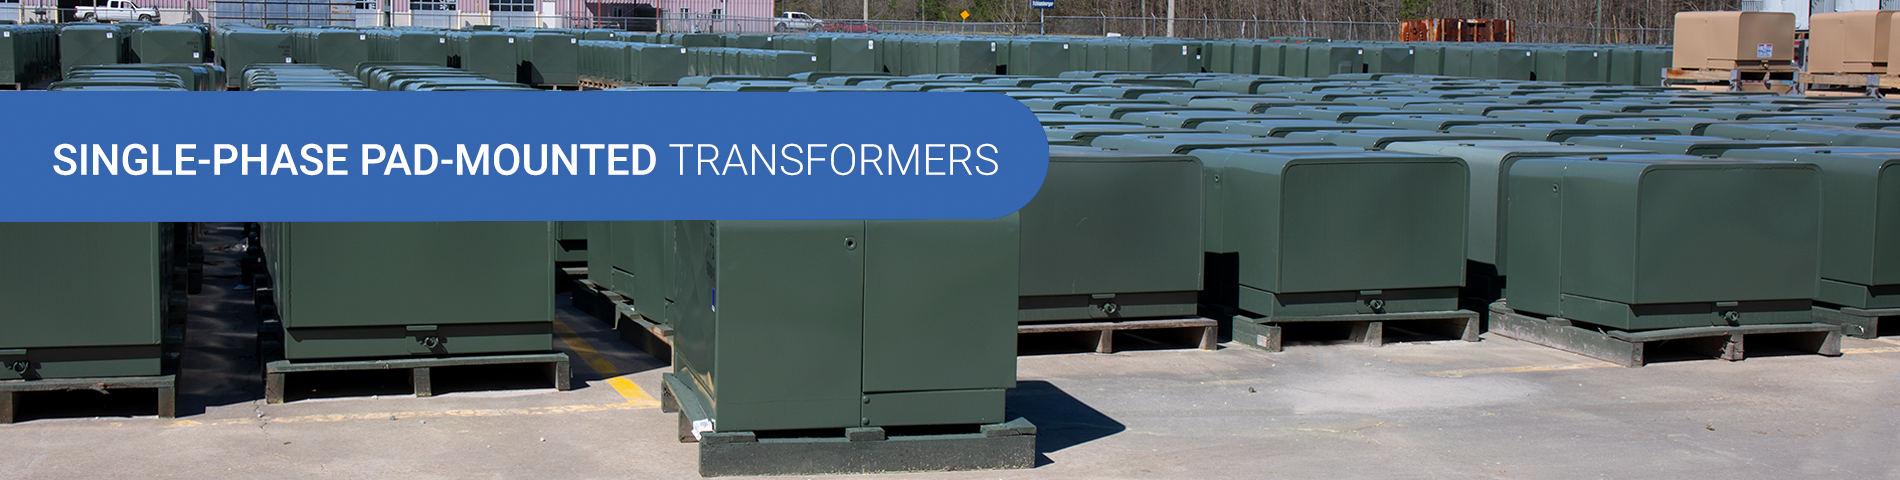 Single-Phase Pad-Mounted Transformers